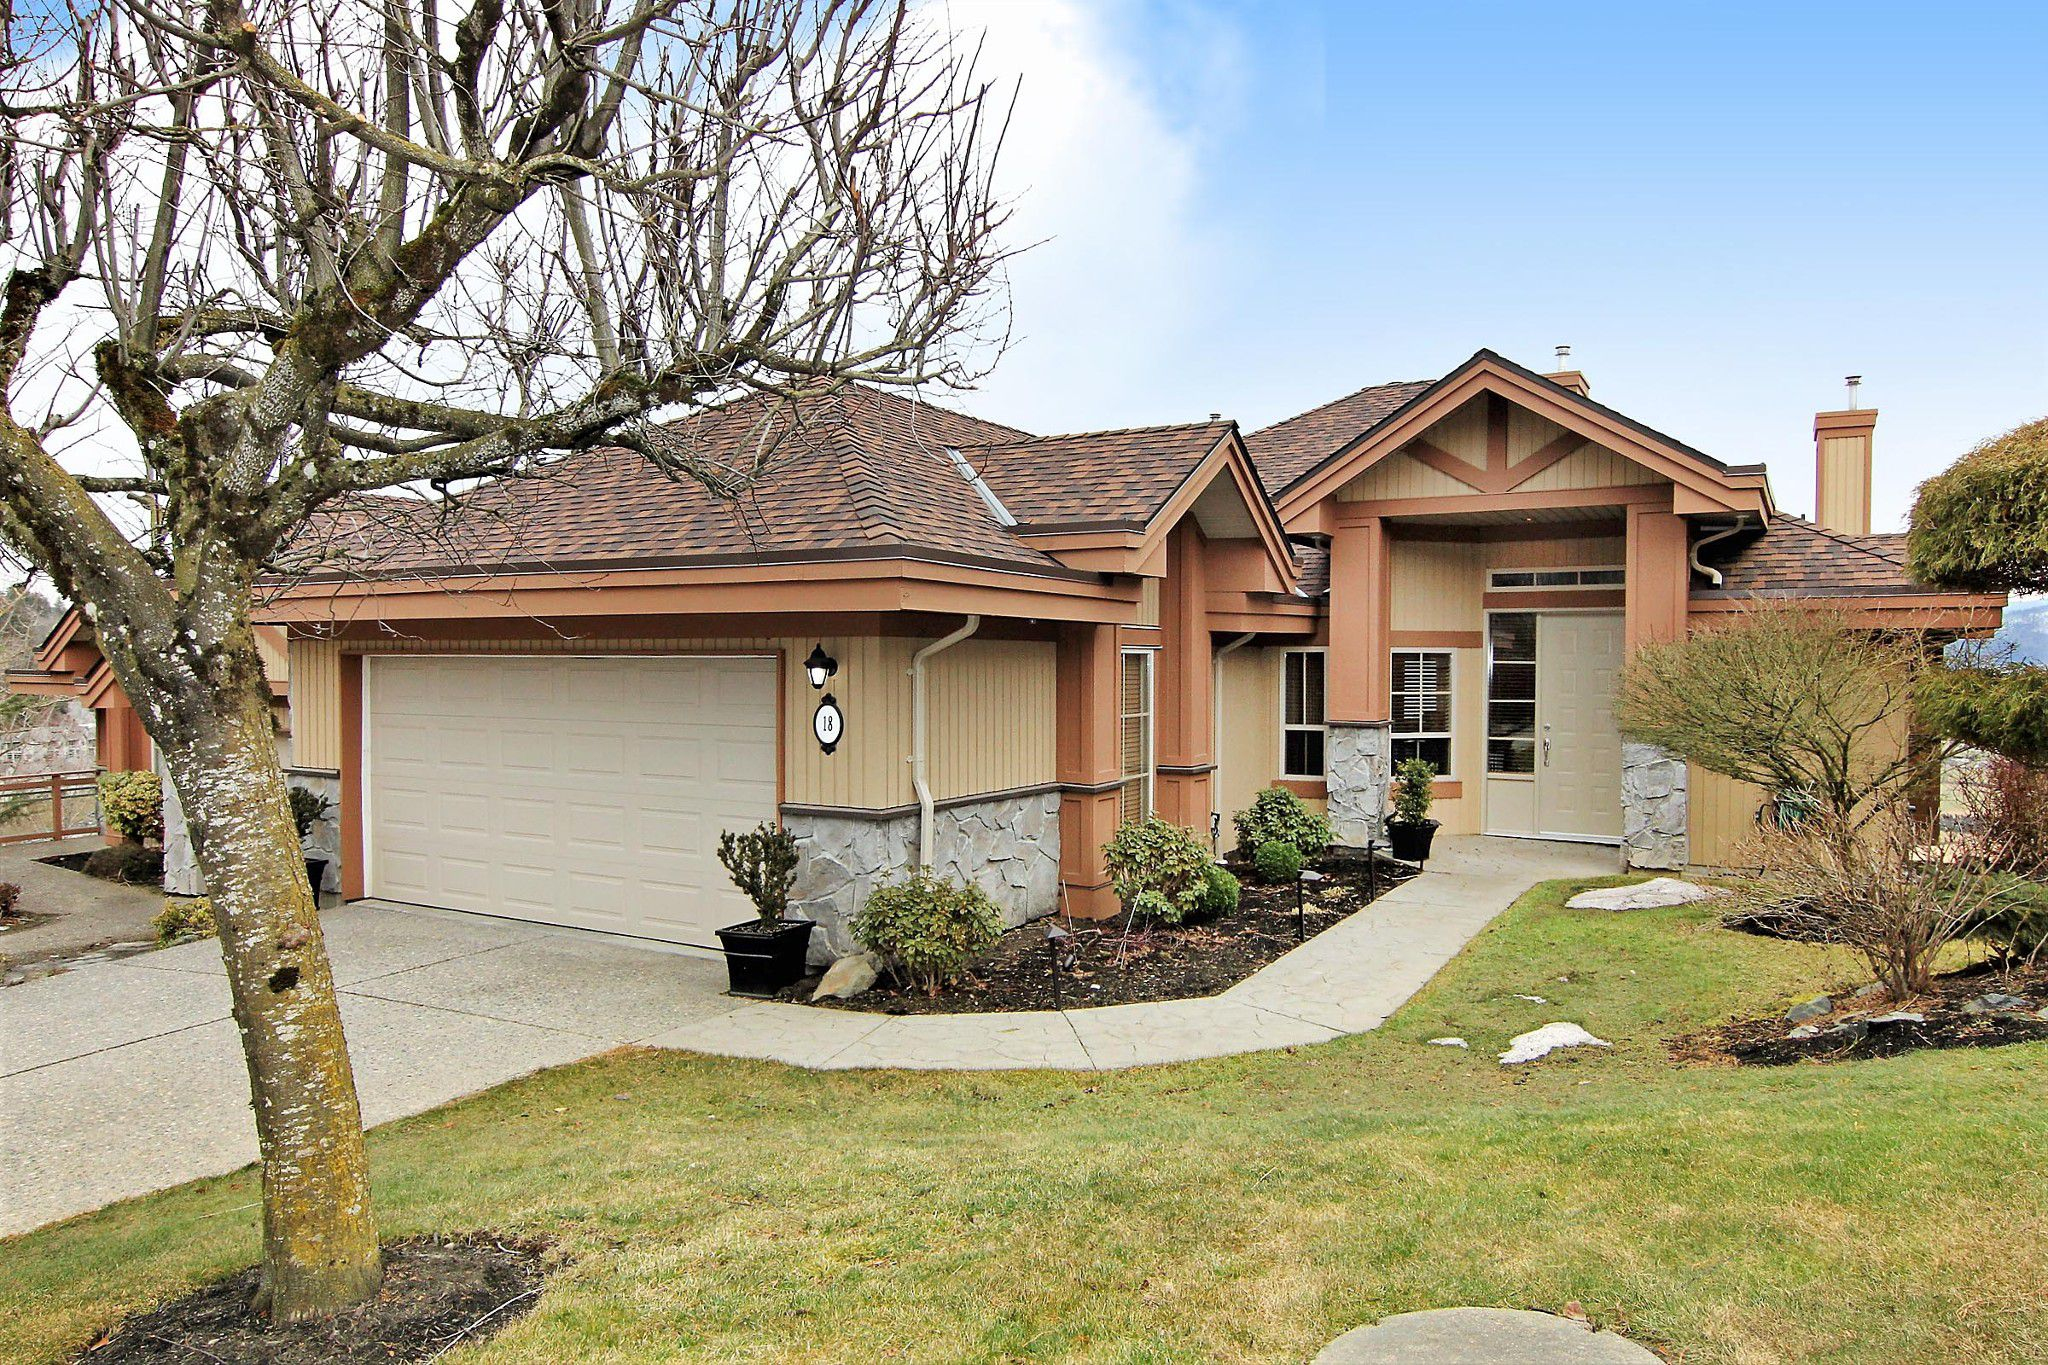 """Main Photo: 18 35931 EMPRESS Drive in Abbotsford: Abbotsford East Townhouse for sale in """"Majestic Ridge"""" : MLS®# R2349776"""